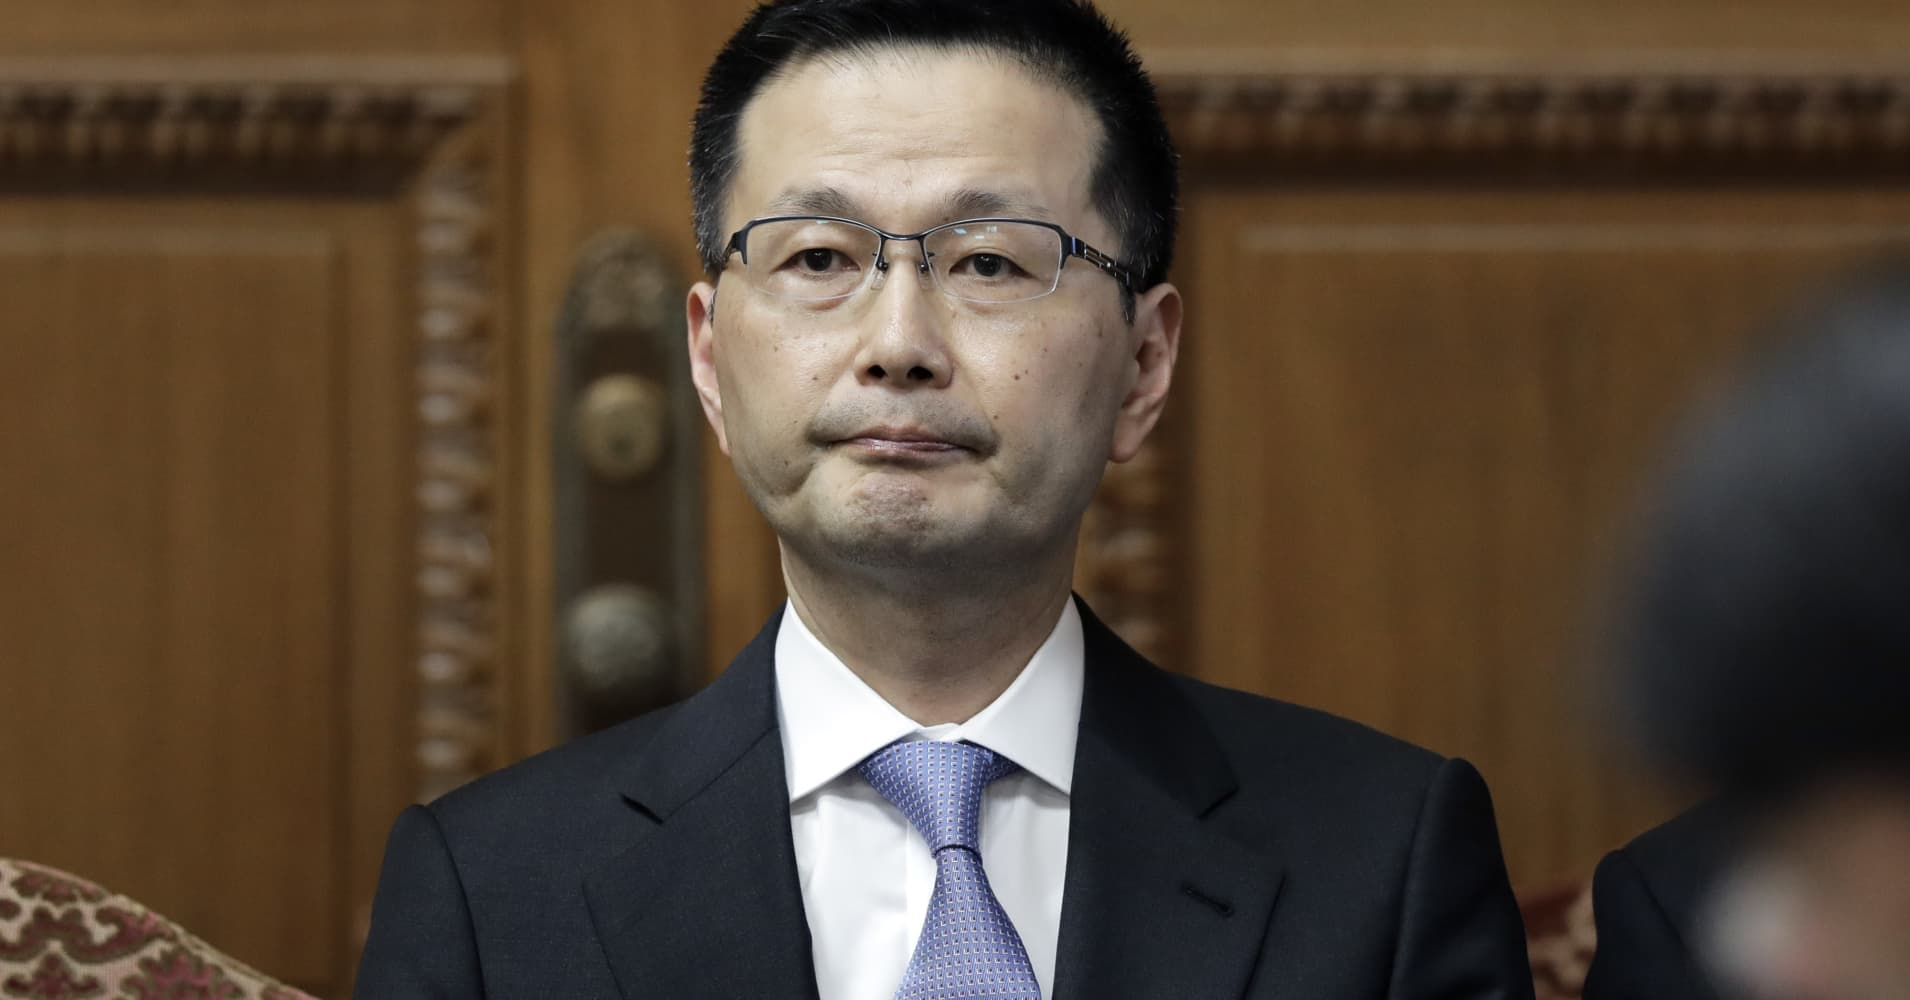 Japan faces risk of falling back into deflation, BOJ's Wakatabe warns